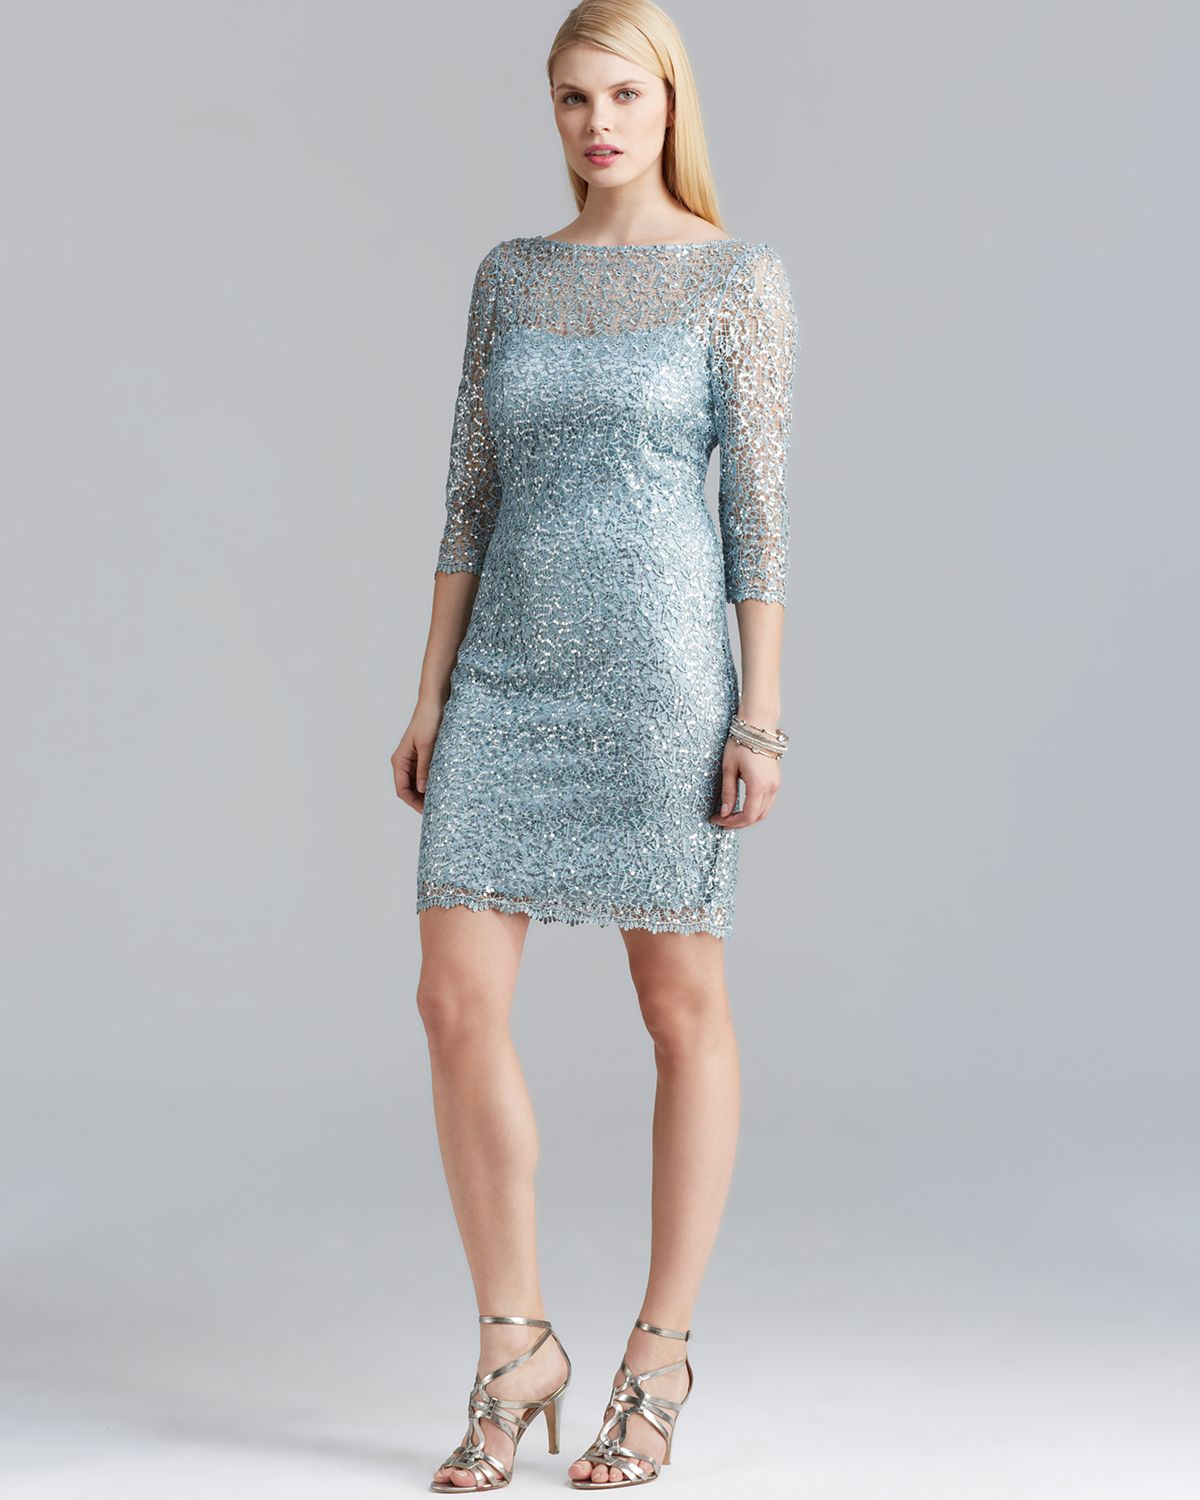 Kay Unger Dress Three Quarter Sleeve Lace In Blue